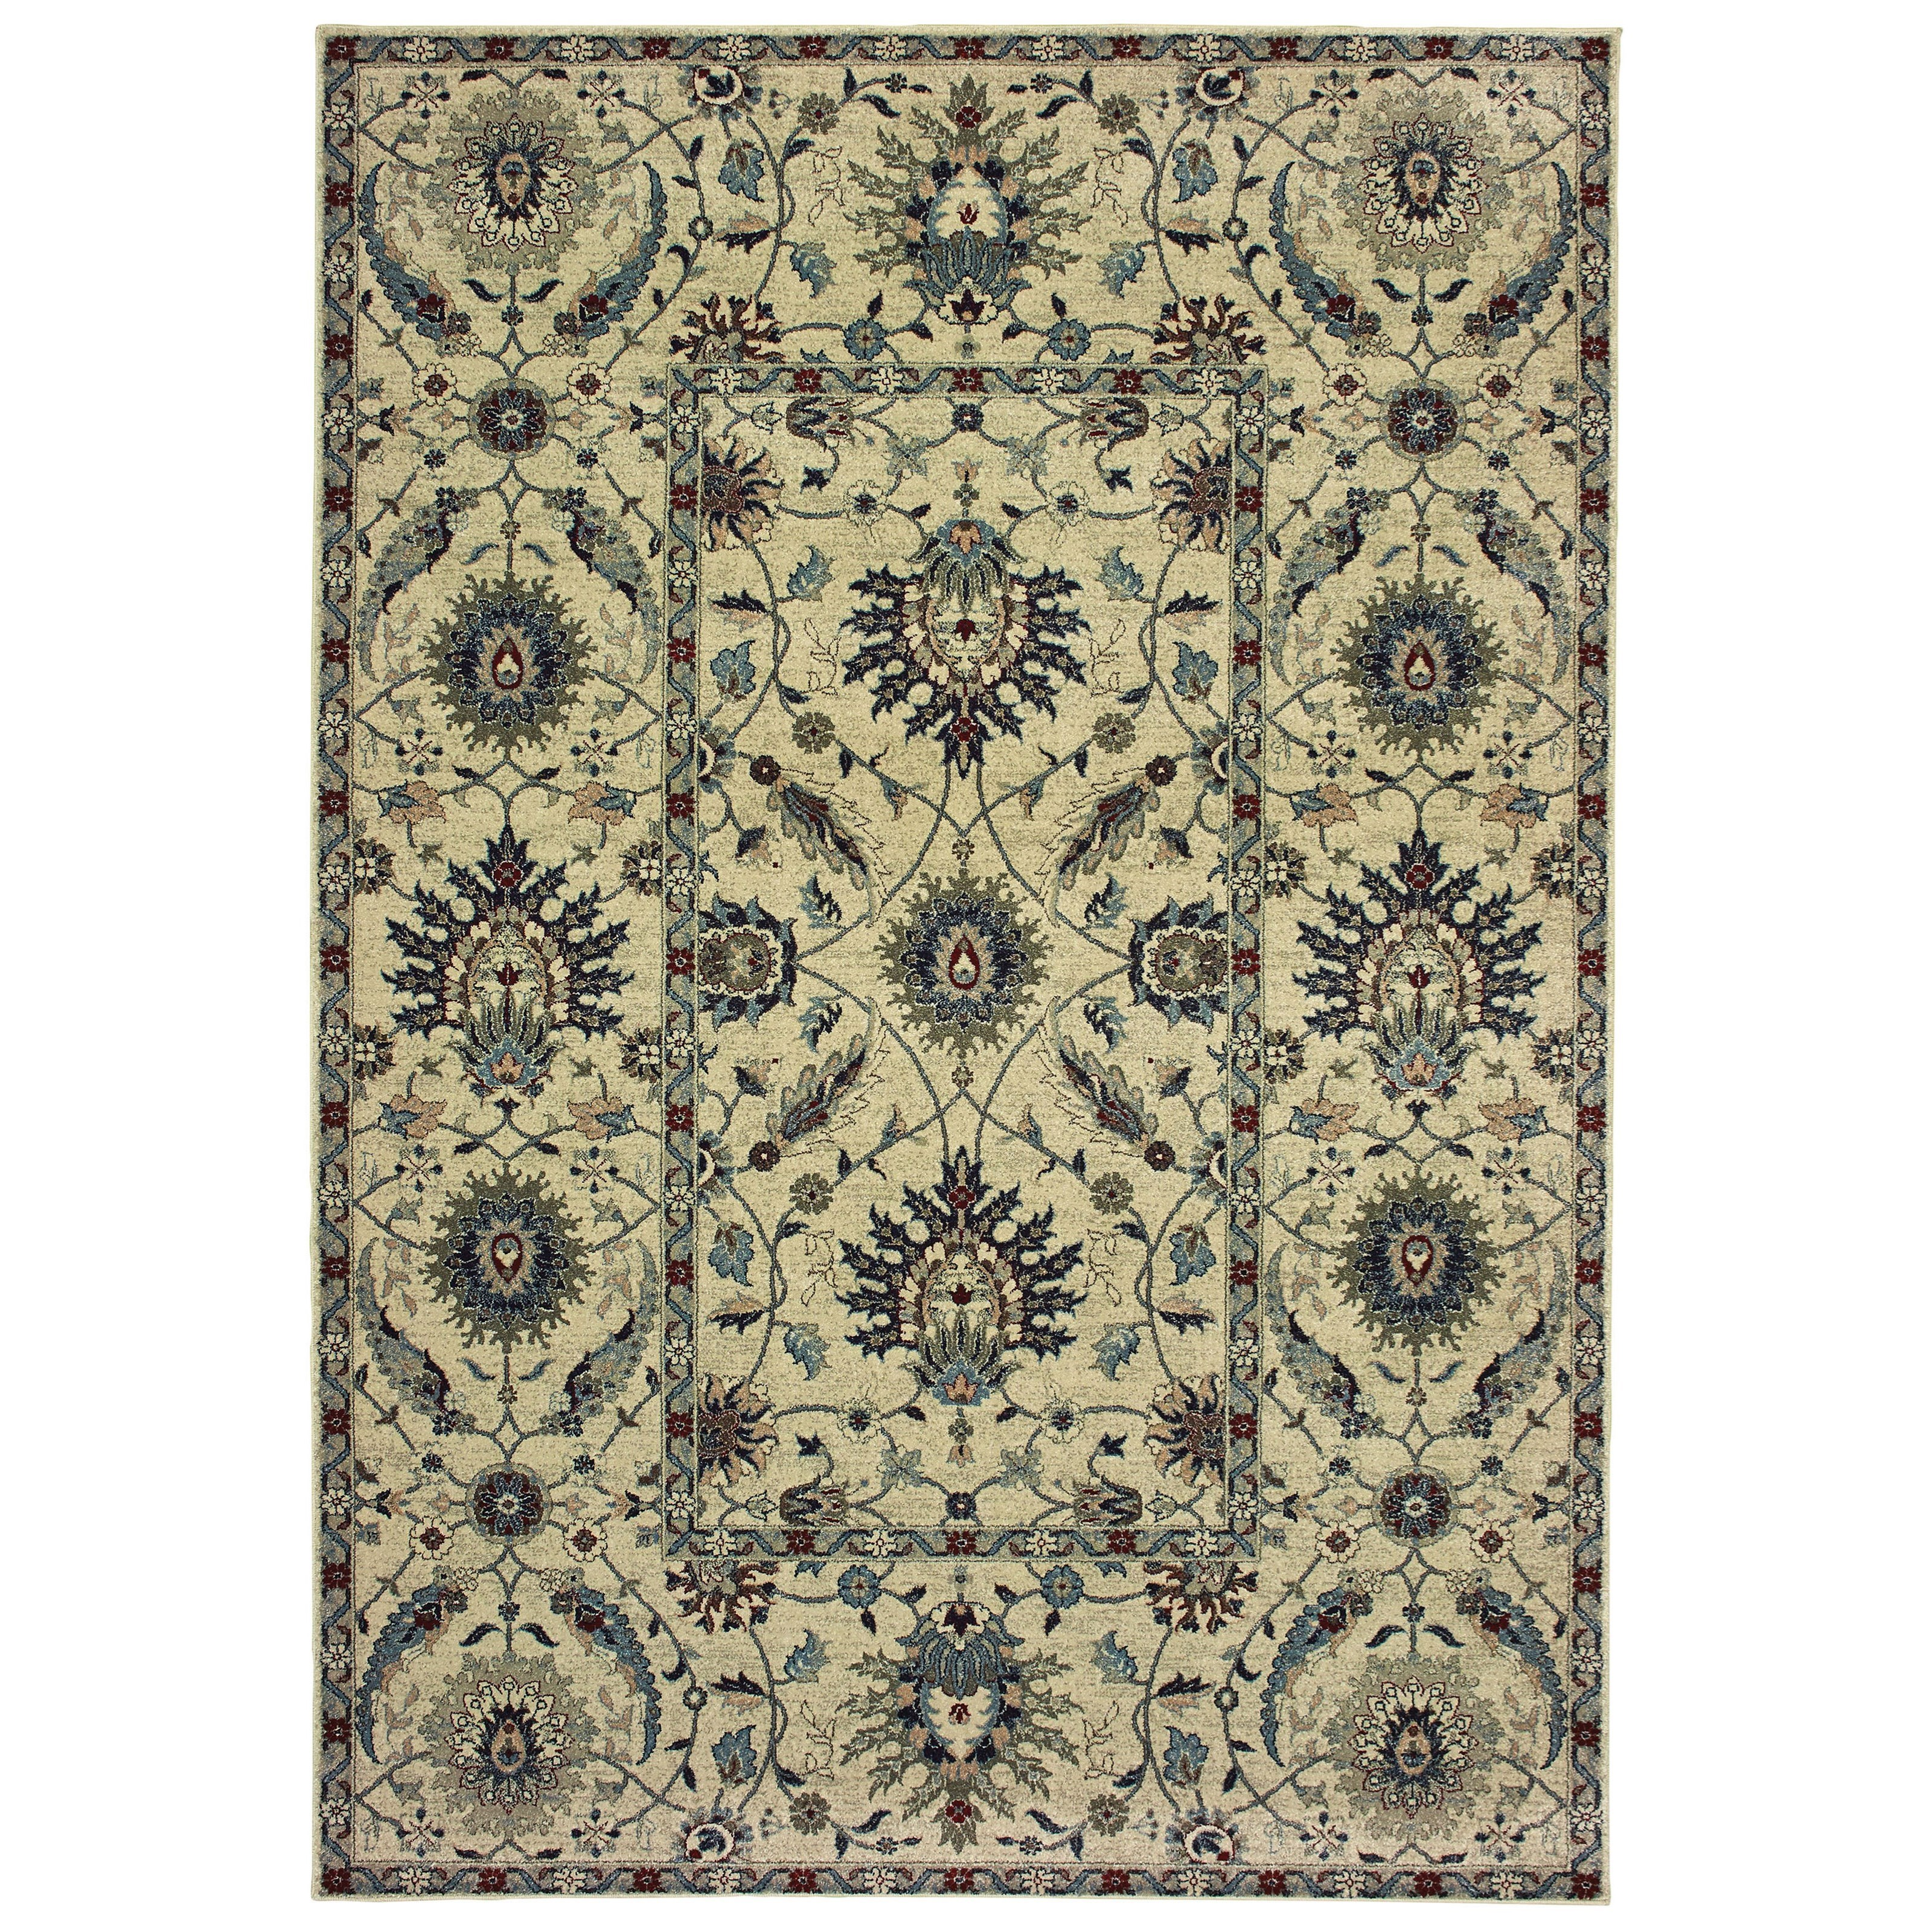 "Raleigh 9'10"" X 12'10"" Rectangle Rug by Oriental Weavers at Furniture Superstore - Rochester, MN"